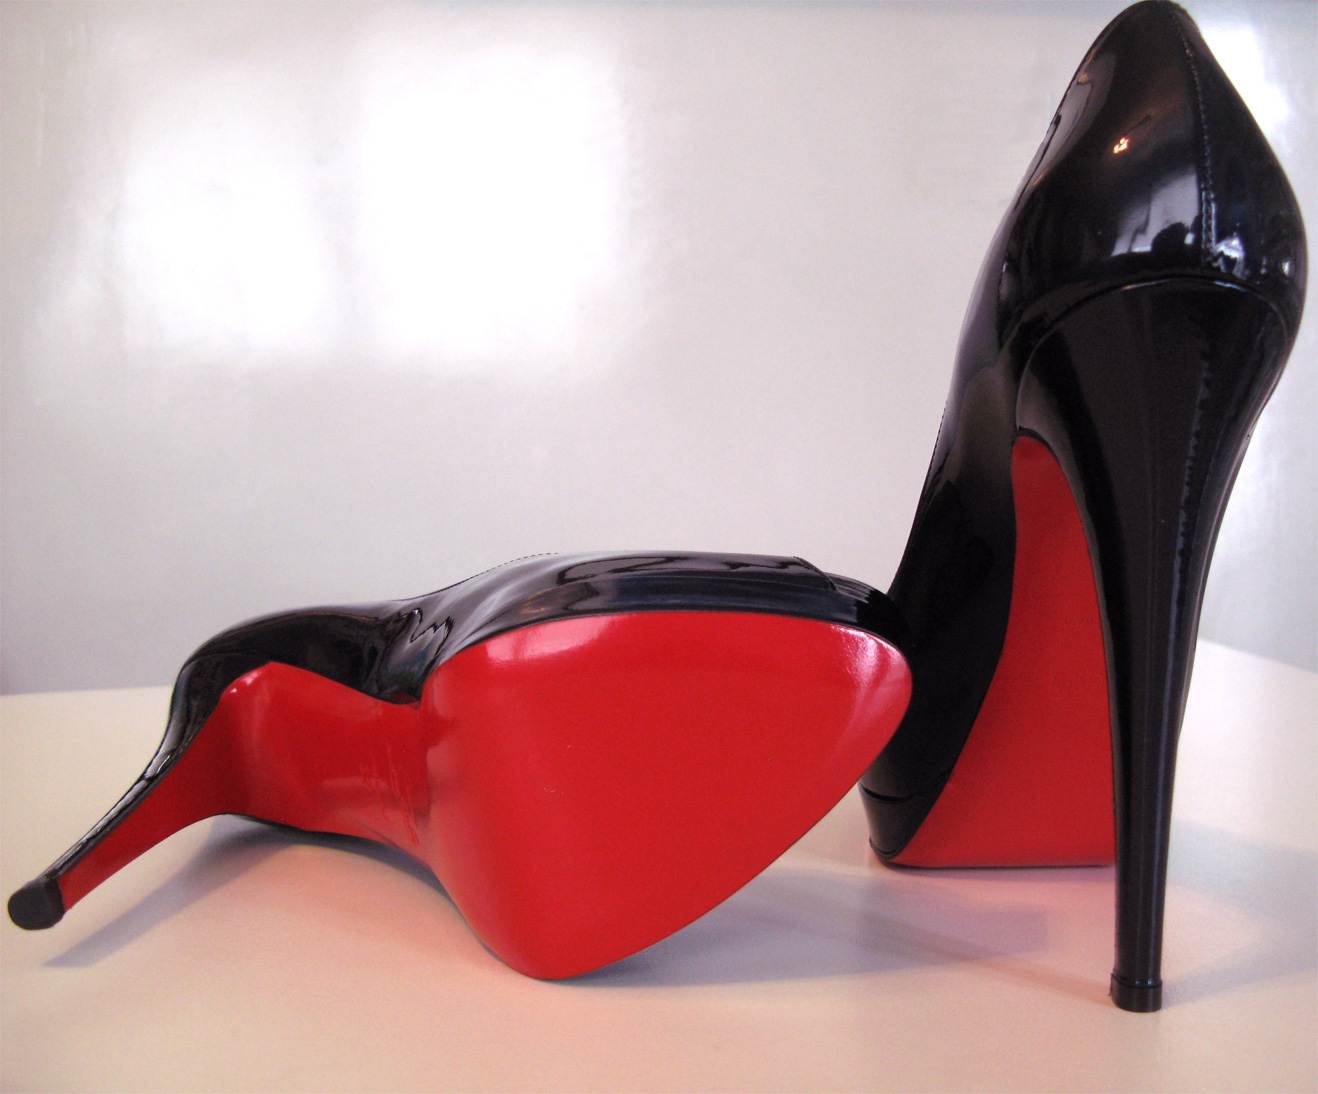 http://upload.wikimedia.org/wikipedia/commons/6/62/Louboutin_altadama140.jpg